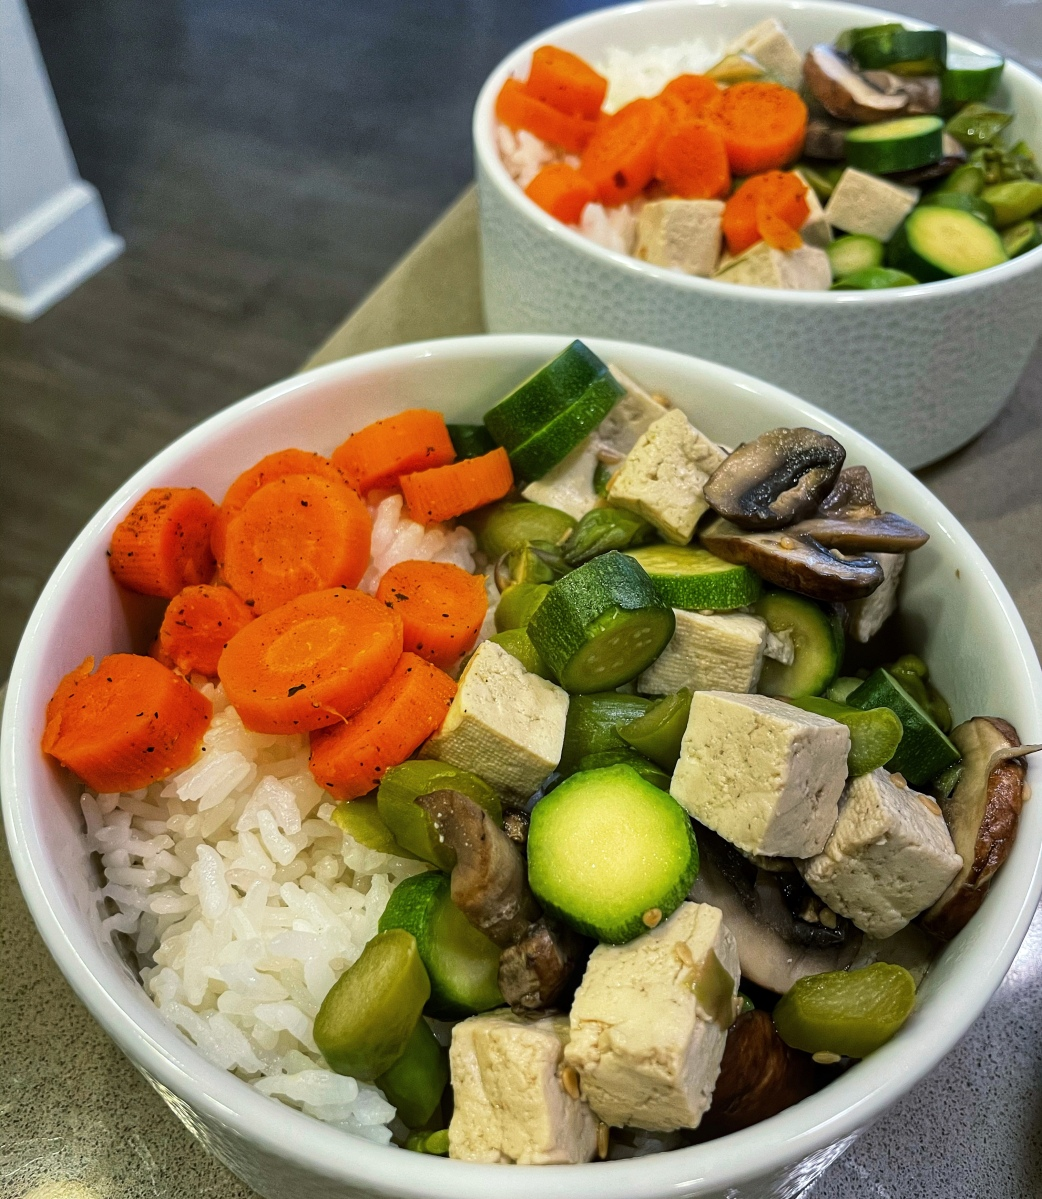 Low fat low sodium low salt easy and tasty recipe with vegetables and tofu